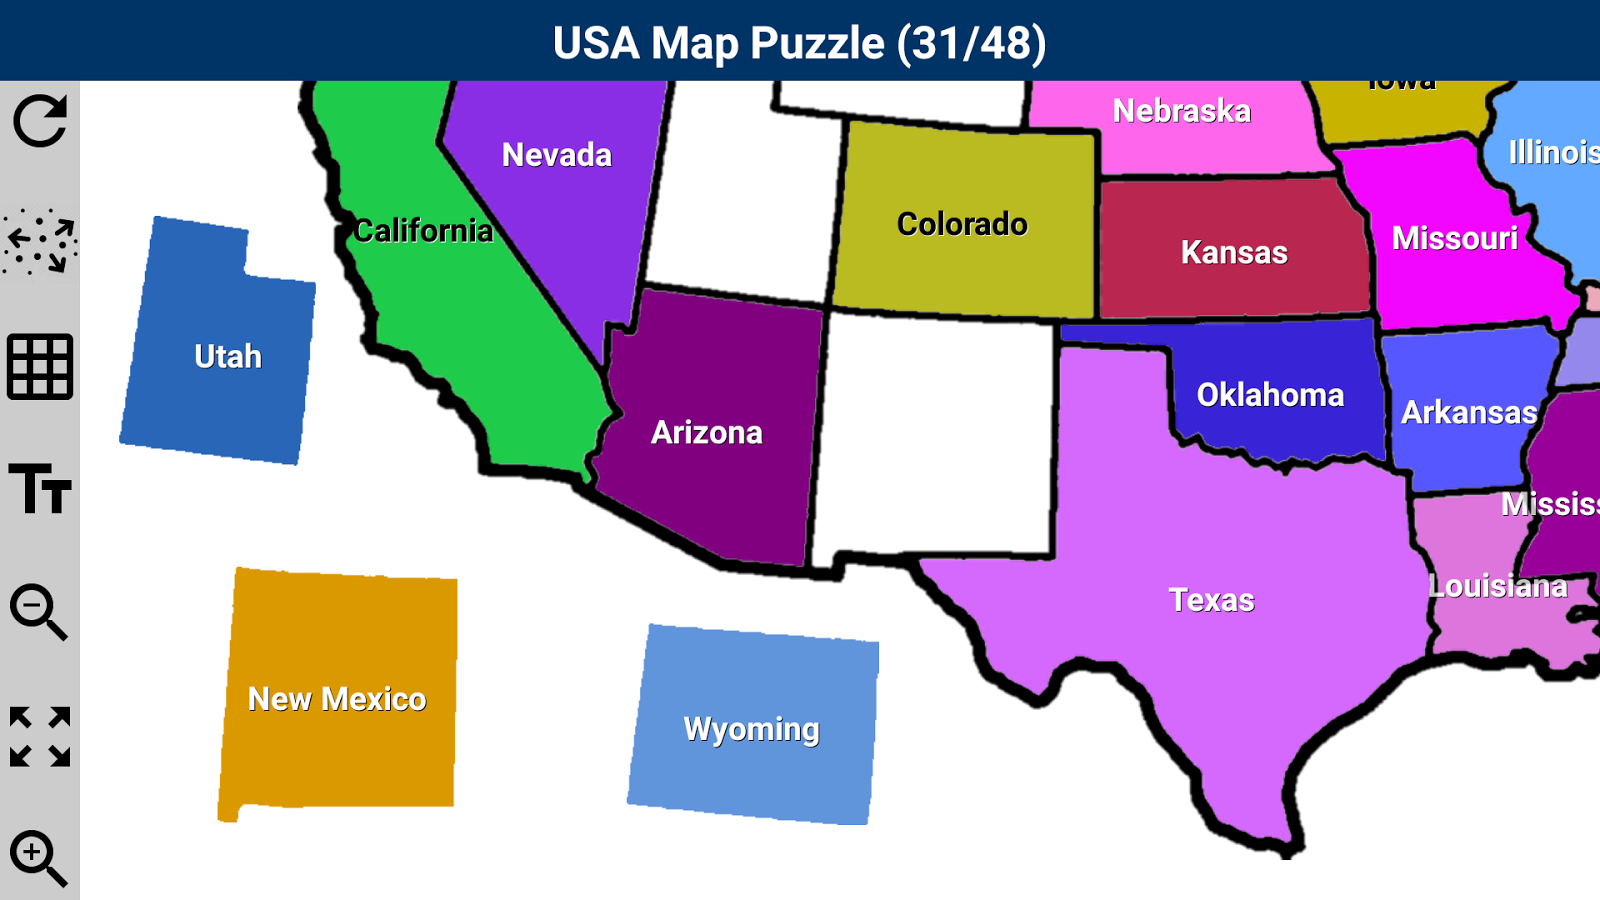 USA Map Puzzle Android Apps On Google Play - Us states map puzzle game